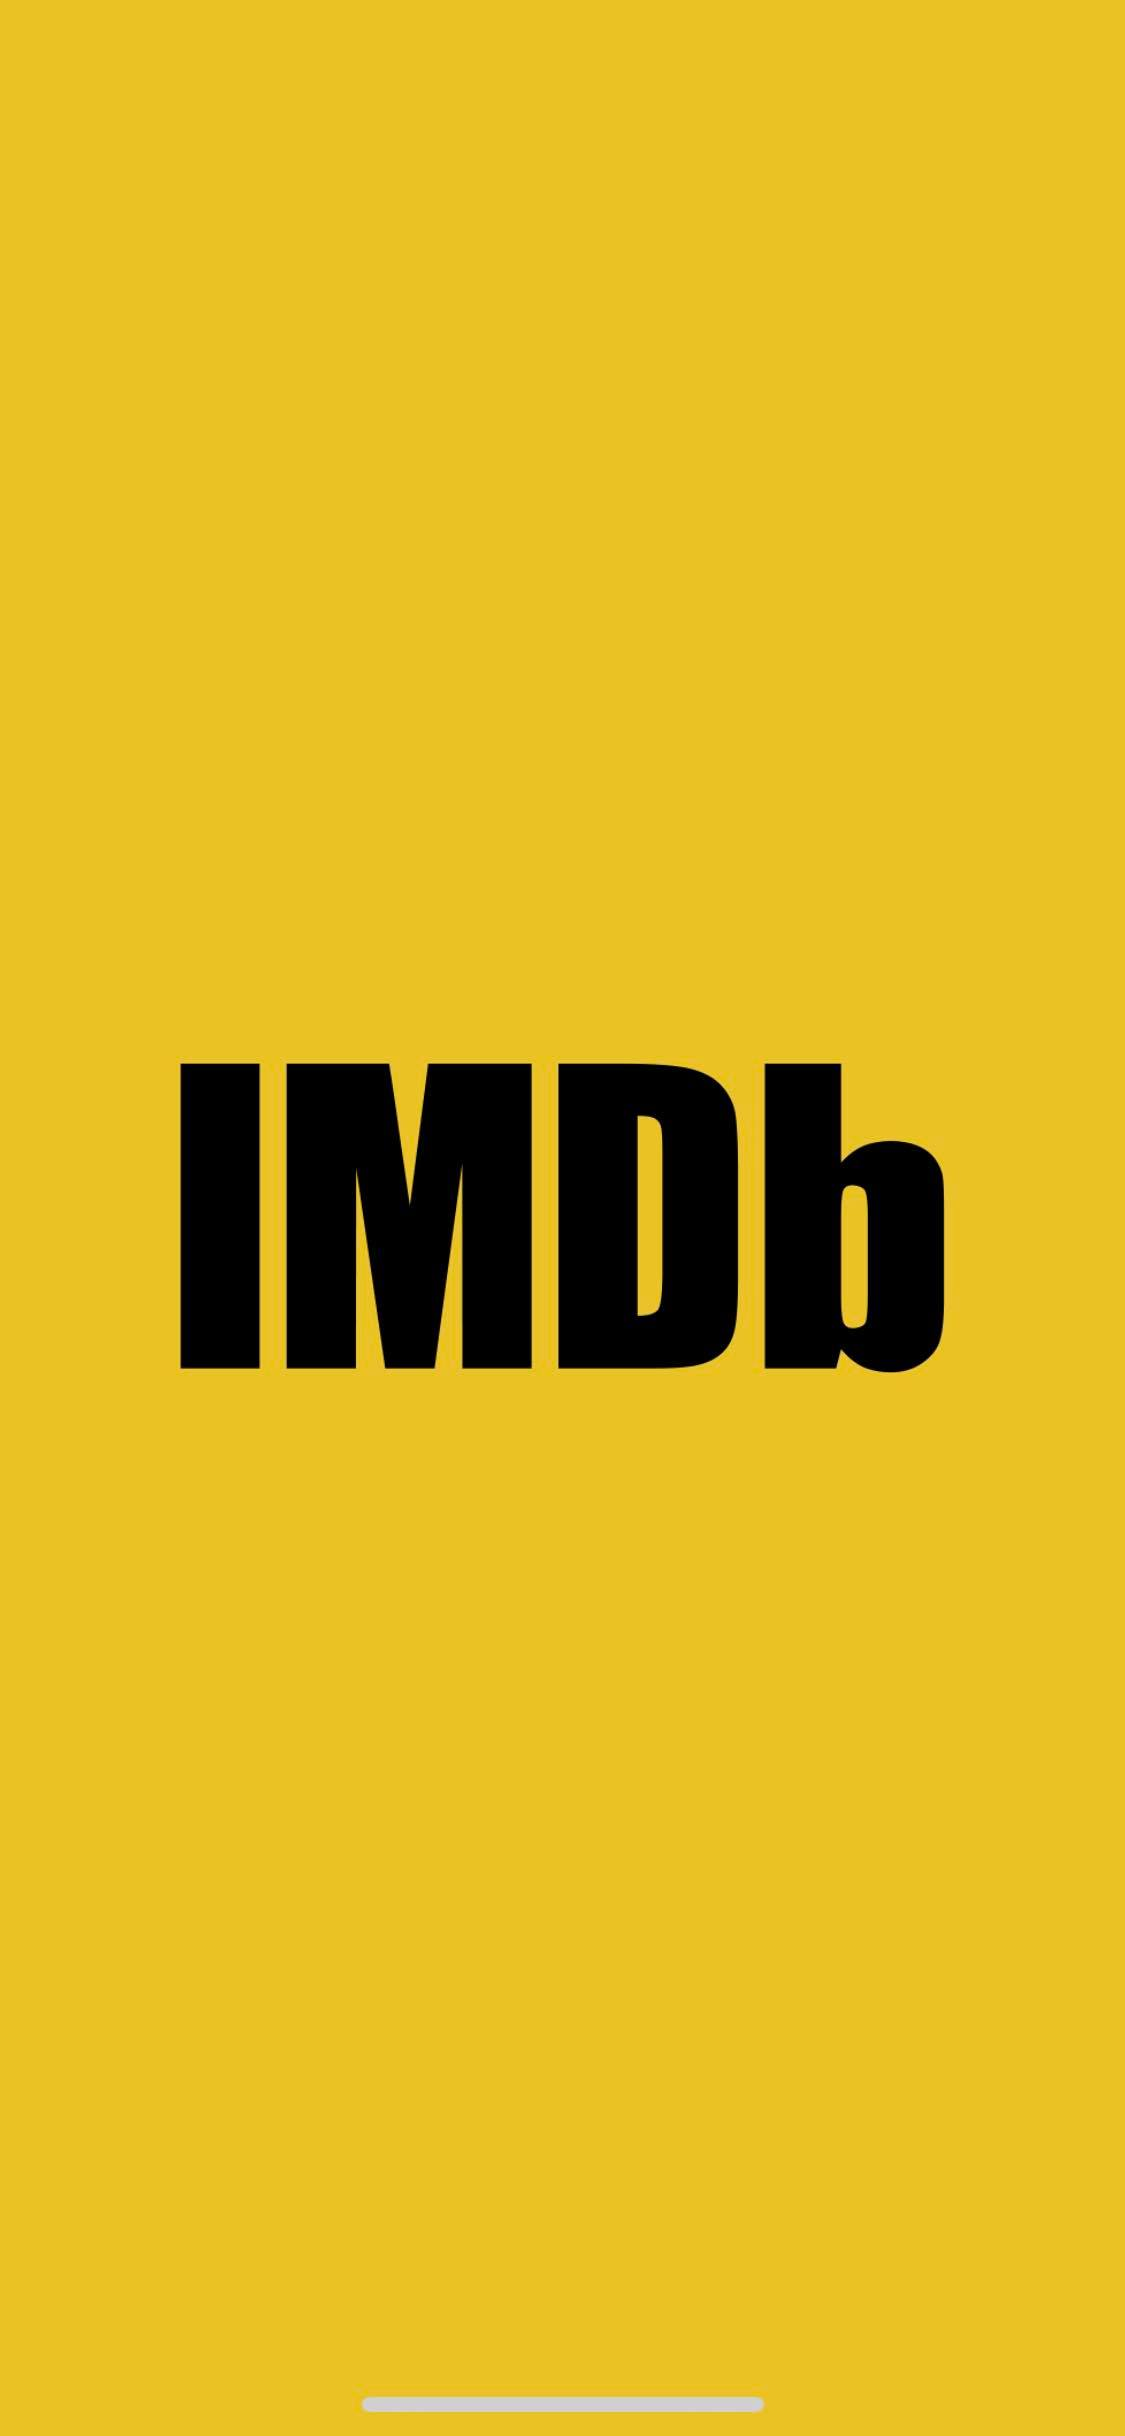 Launch Screen on iOS by IMDb from UIGarage